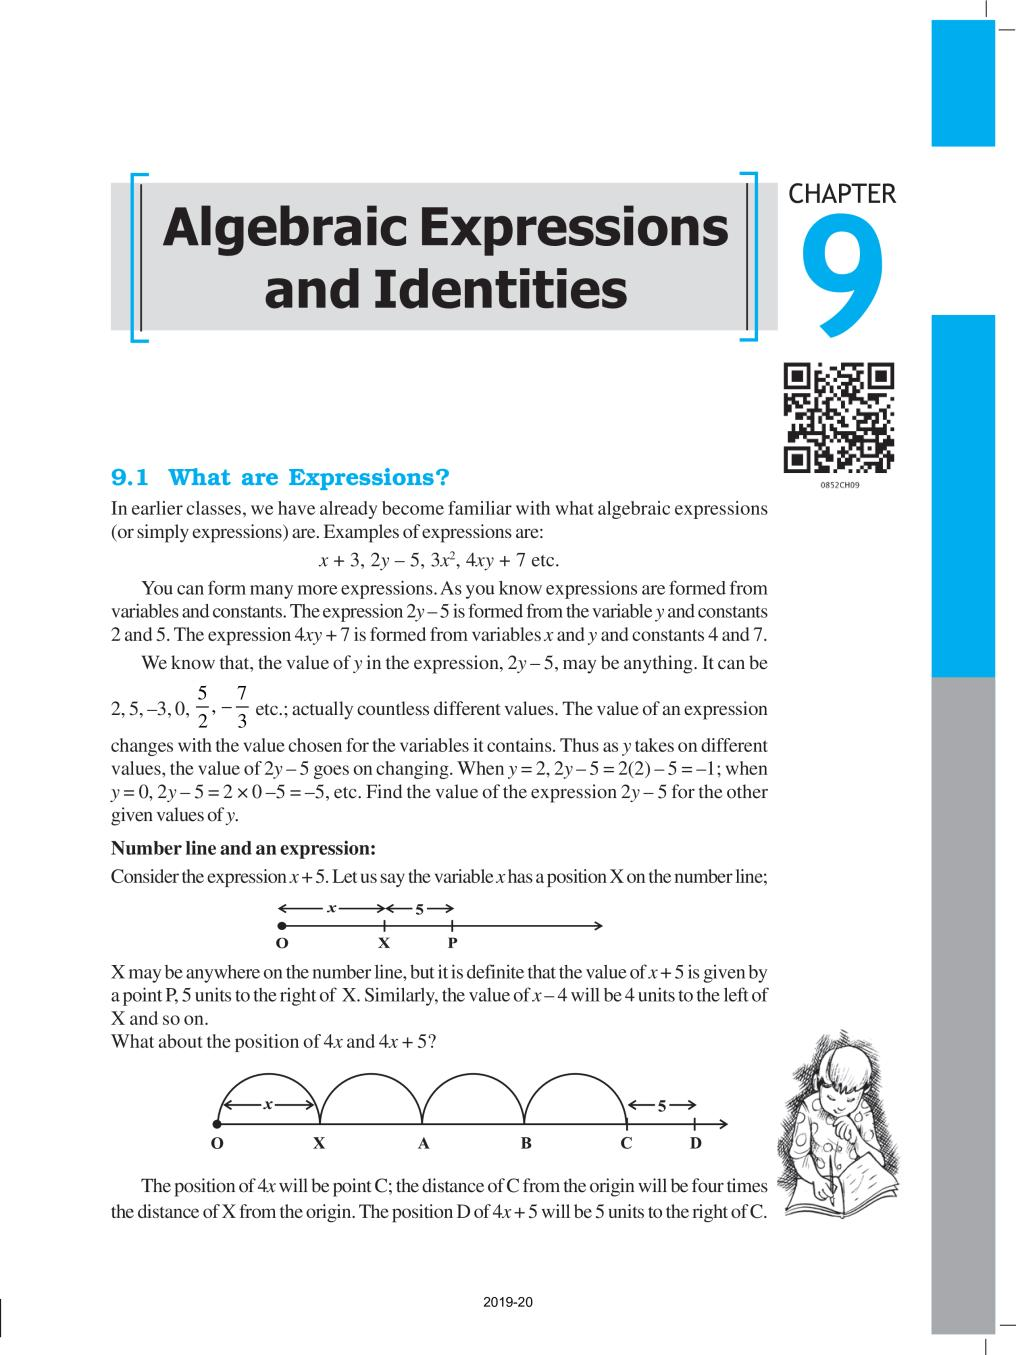 NCERT Book Class 8 Maths Chapter 9 Algebraic Expressions and Identities